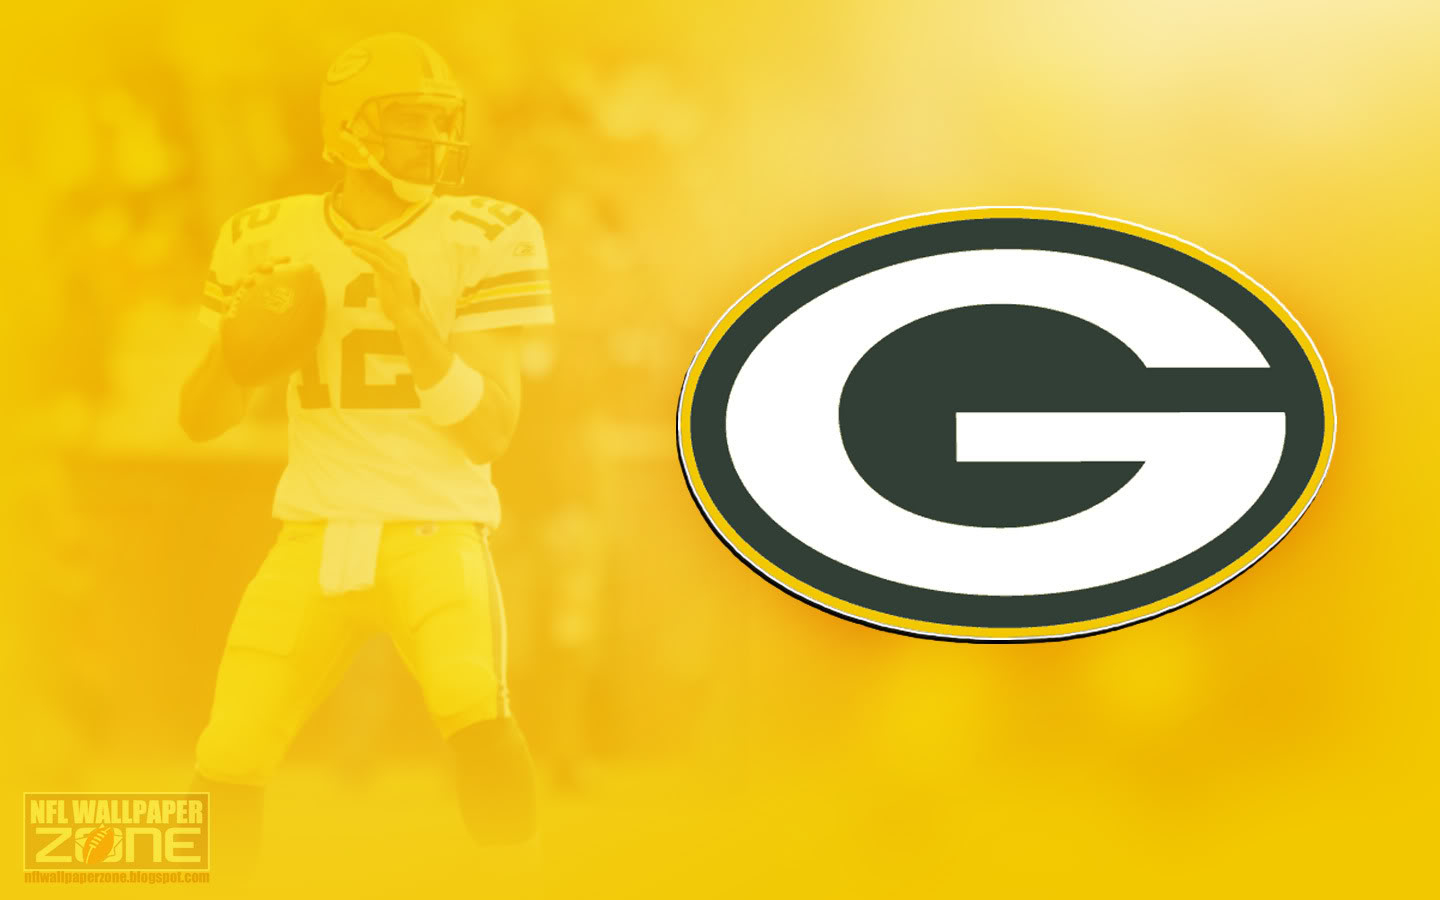 Green Bay Packers IPhone Wallpapers Group 1440x900